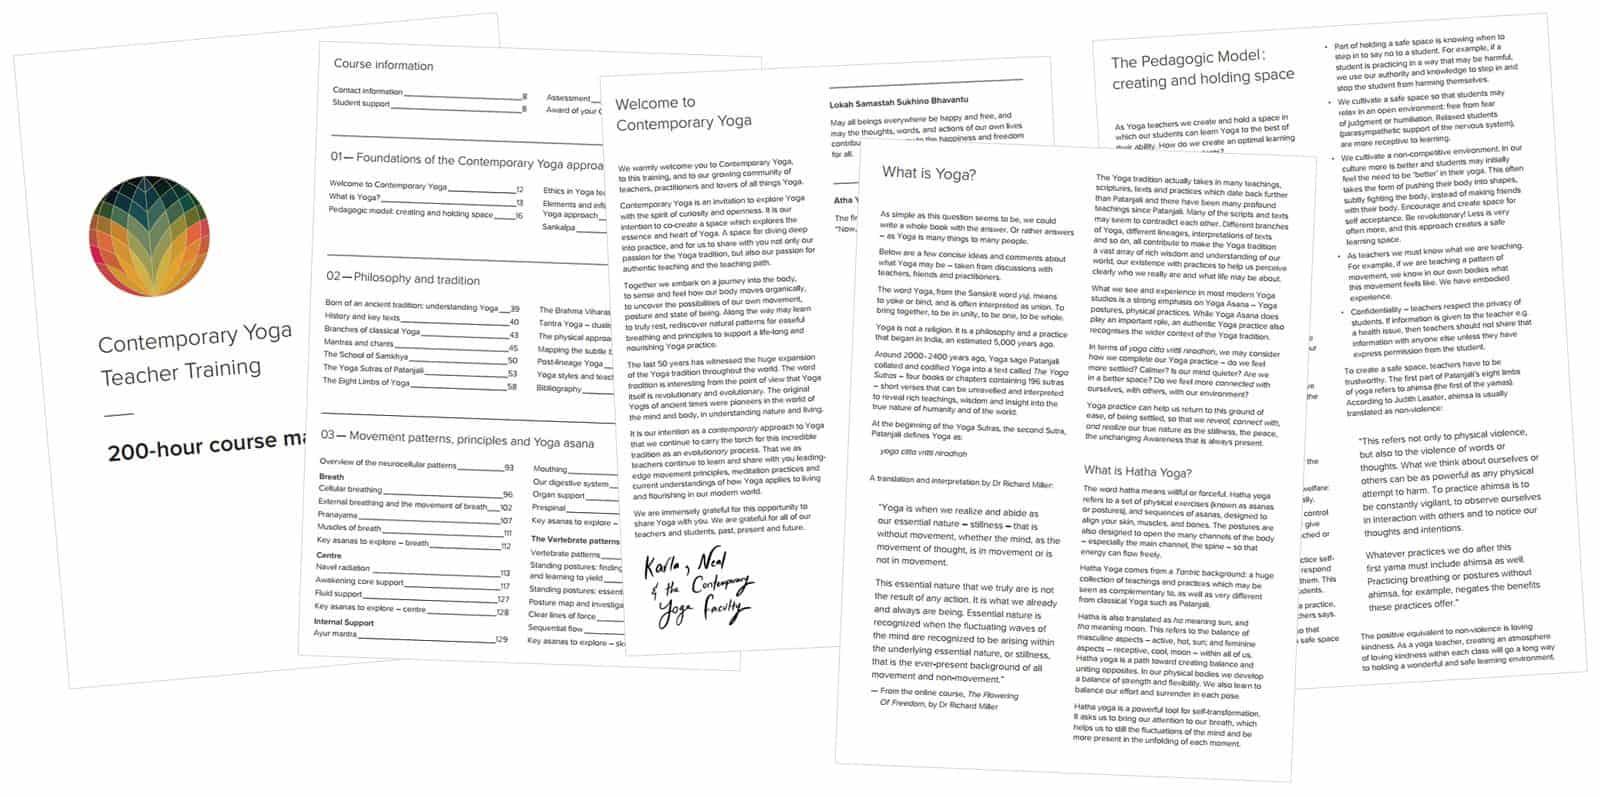 Contemporary Yoga Teacher Training Manual, Sample Pages